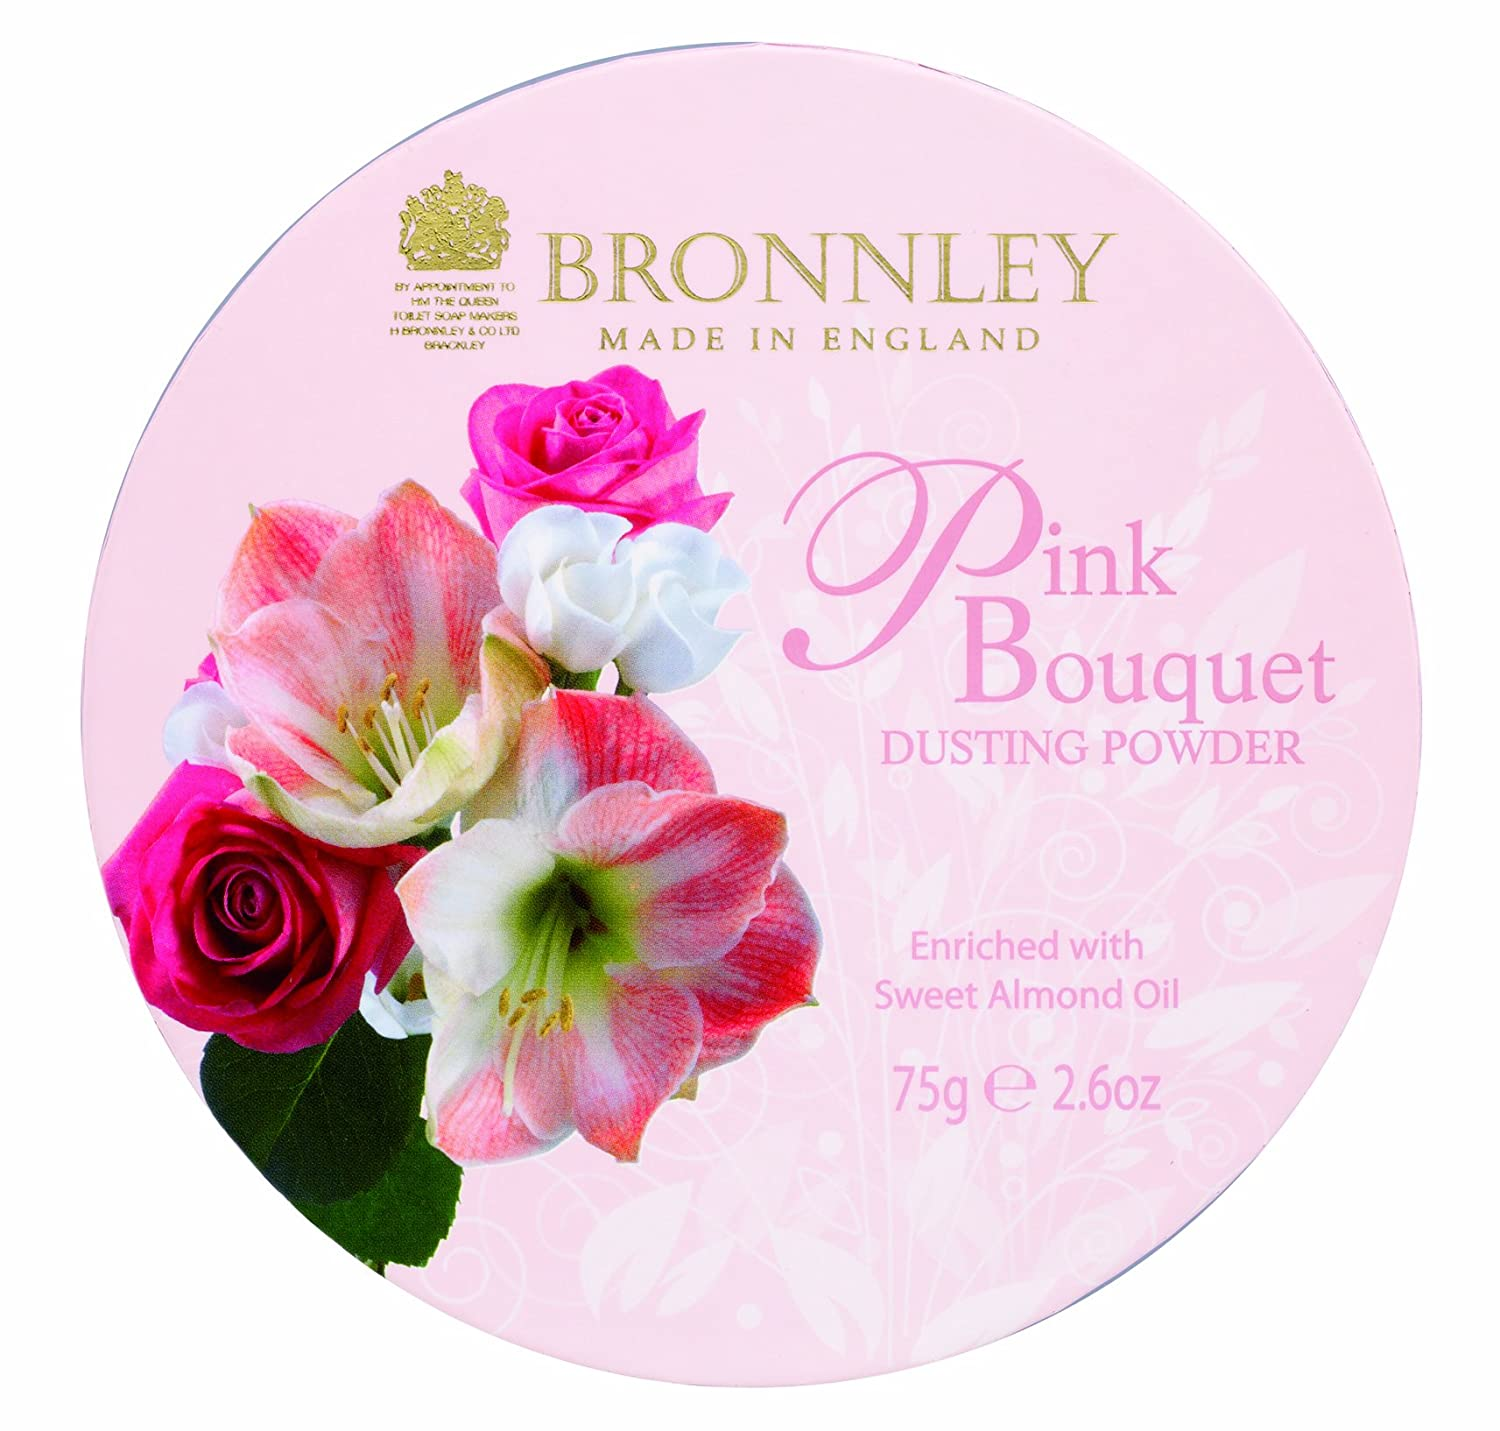 Bronnley Pink Bouquet Dusting Powder 75g H. Bronnley & Co. UK Ltd 112037